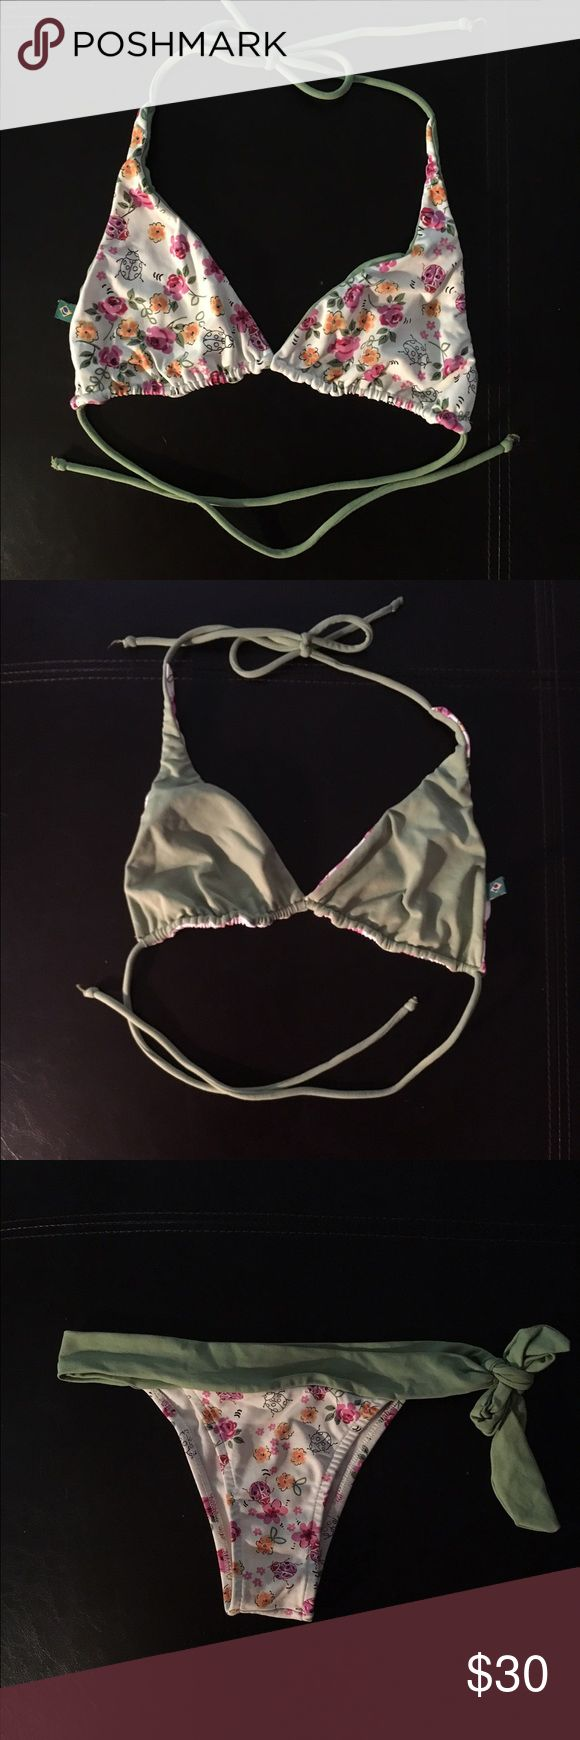 Coral Biquinis Brasil Bikini Practically brand new bikini set. Top is reversible, can be worn as the floral pattern or as the solid green. Bottoms are just the floral pattern. Coral Biquinis Swim Bikinis